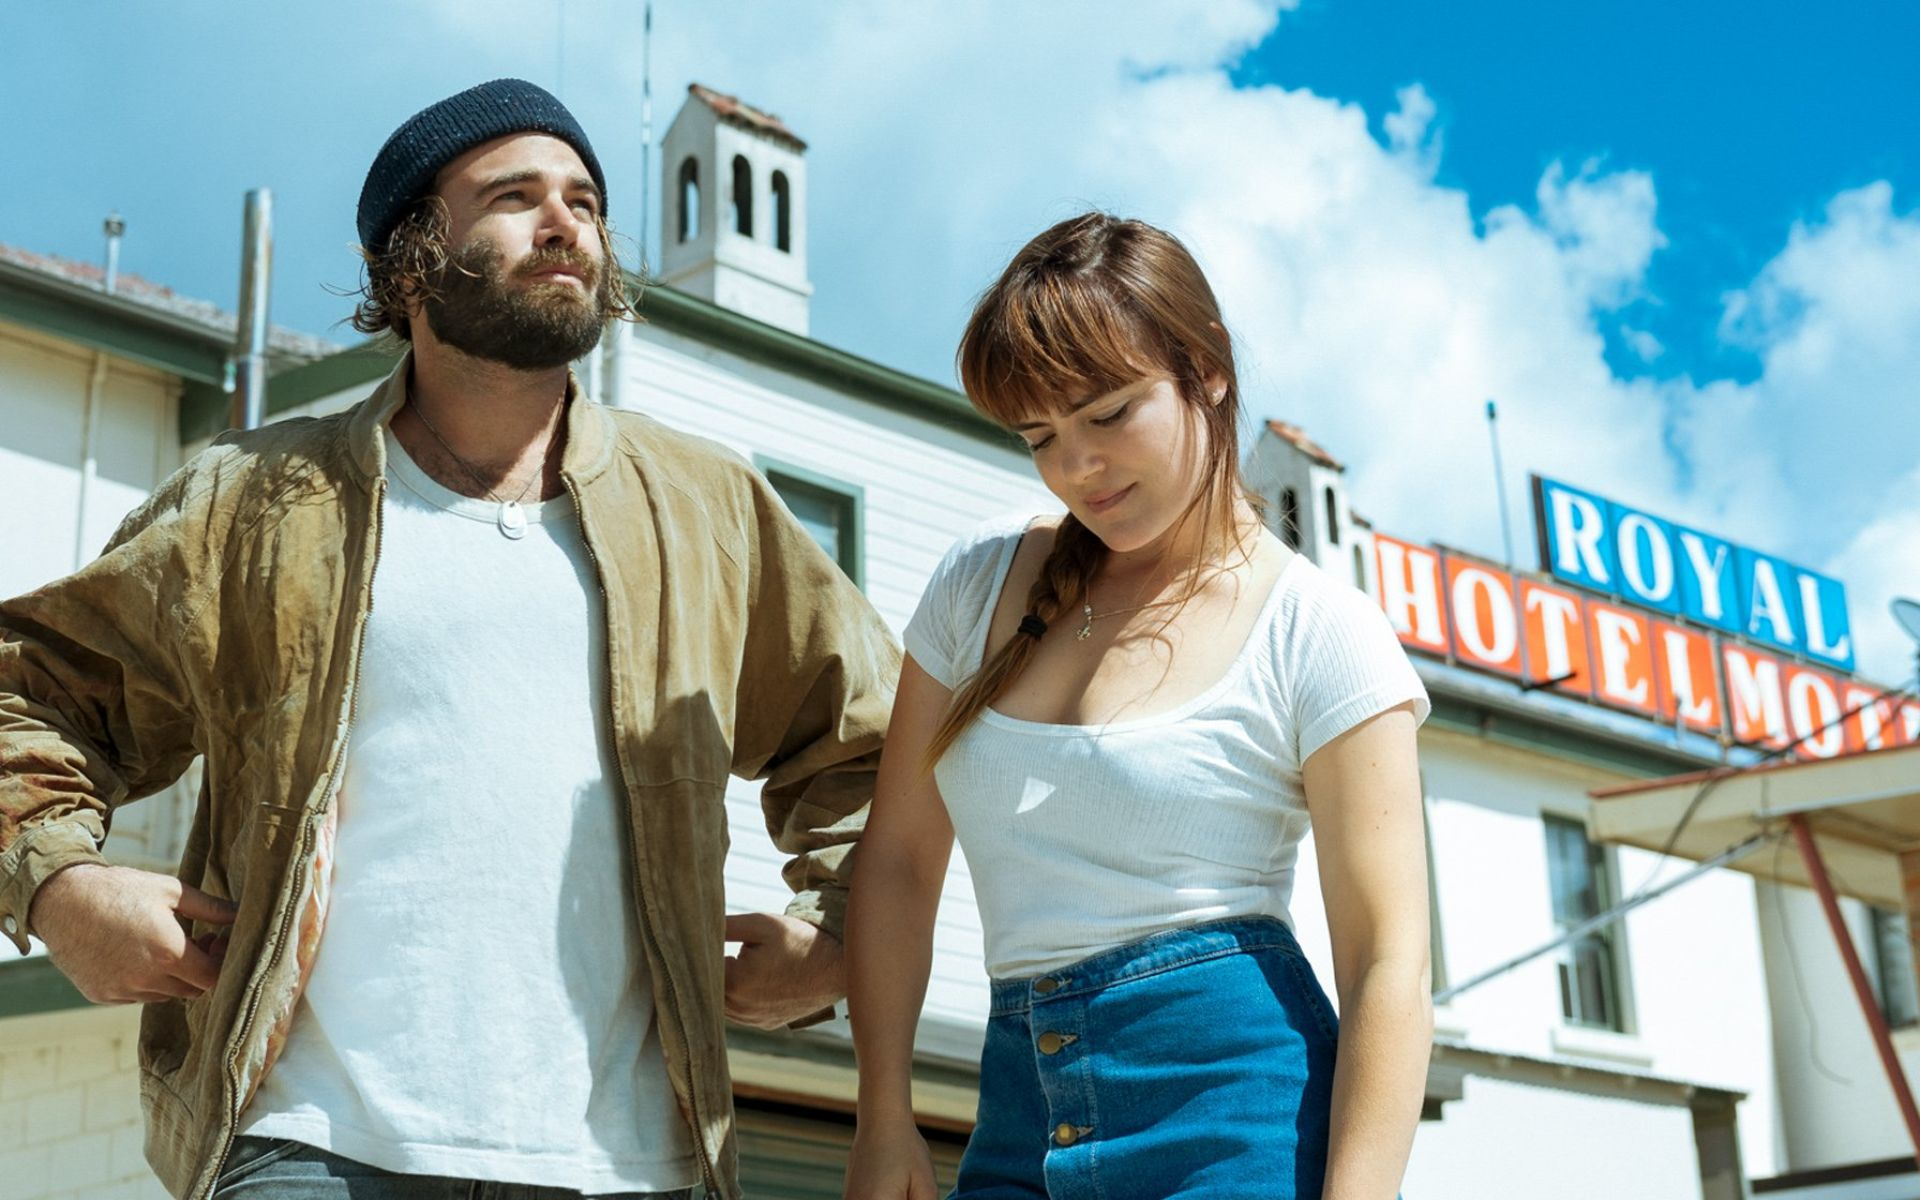 Angus Julia Stone Tour 2018 Dates And Tickets Australia